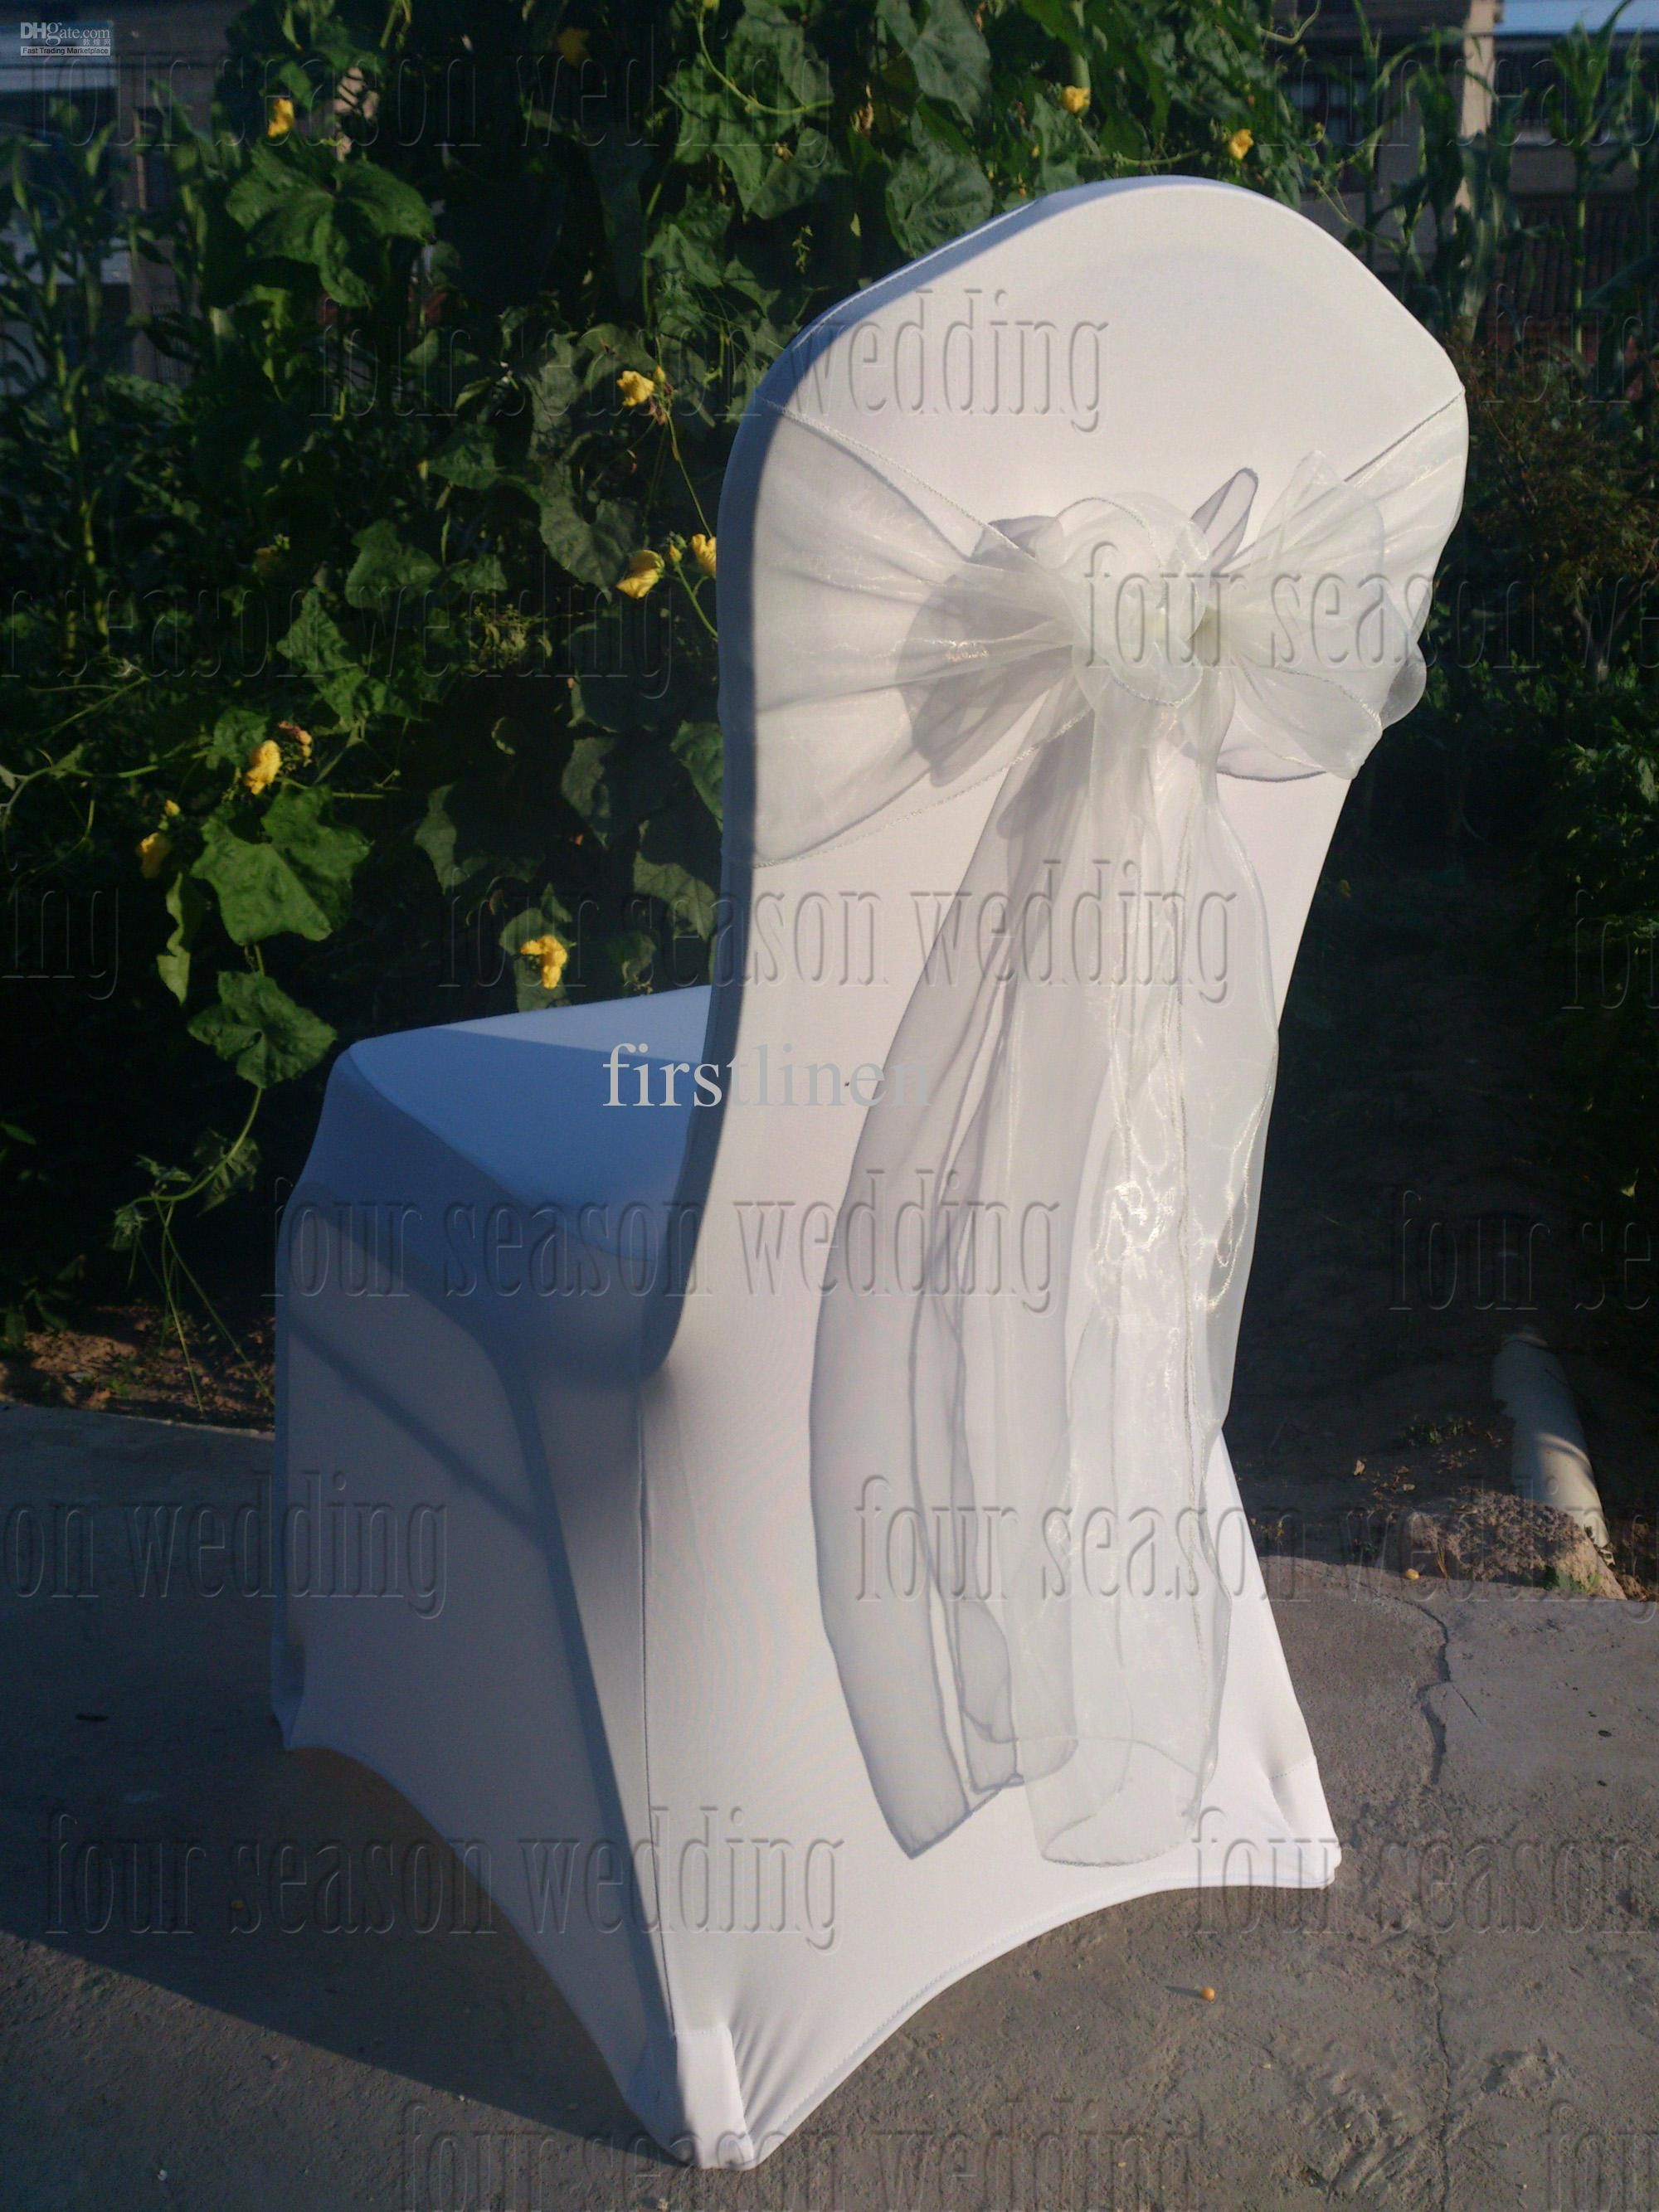 Spandex Chair Covers For Sale Cheap Pottery Barn Irving Wholesale Cover Buy White Organza Sashes 1 88 Dhgate